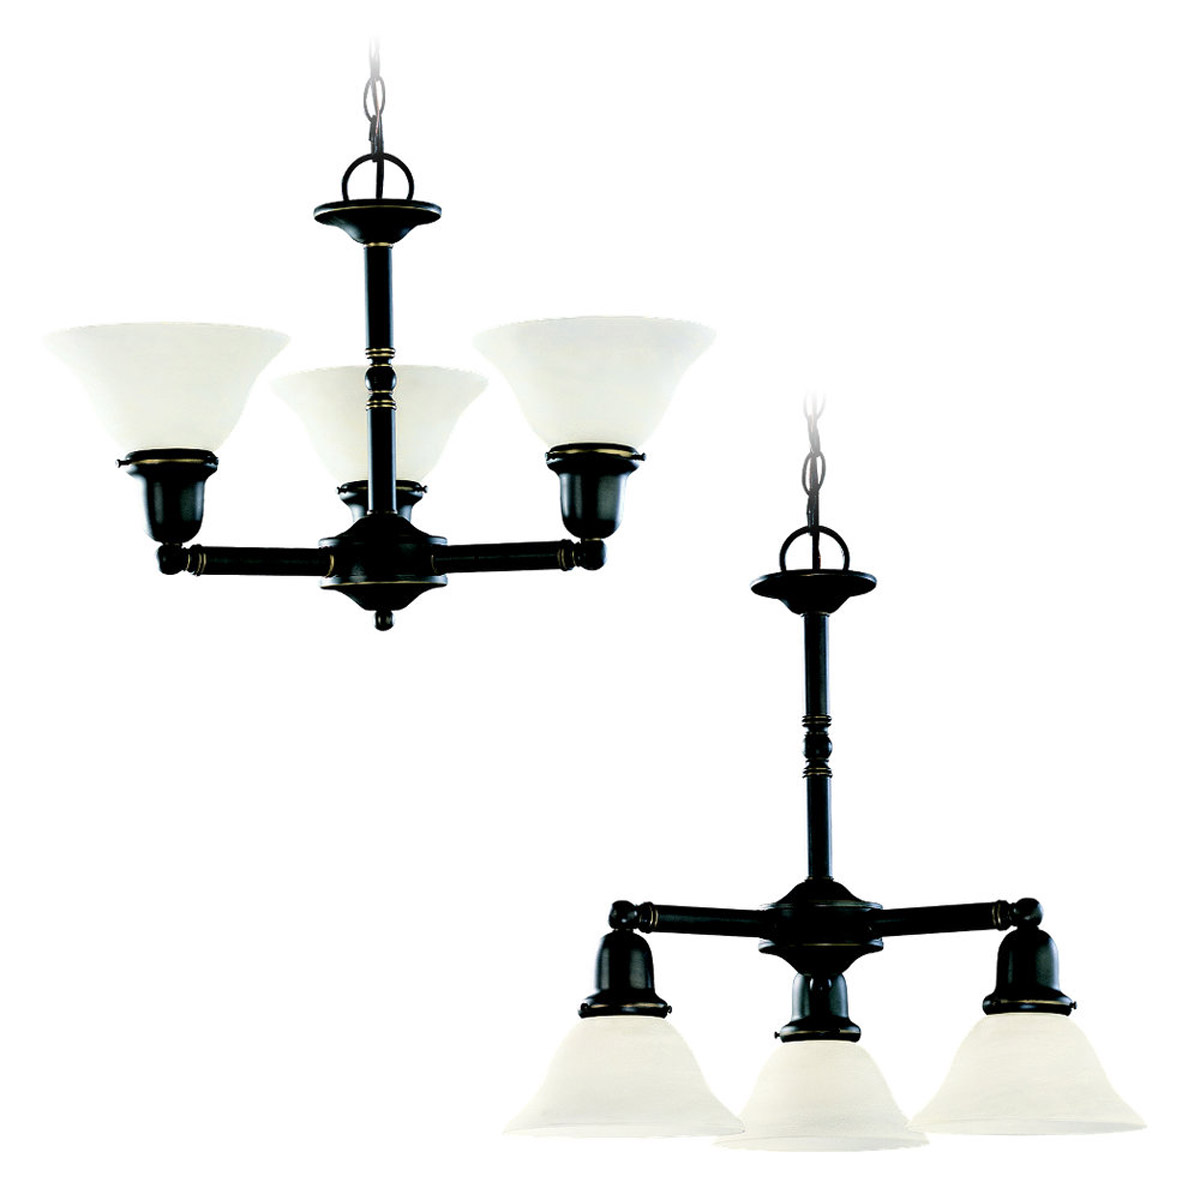 Sea Gull Lighting Sussex 3 Light Chandelier in Heirloom Bronze 31060-782 photo